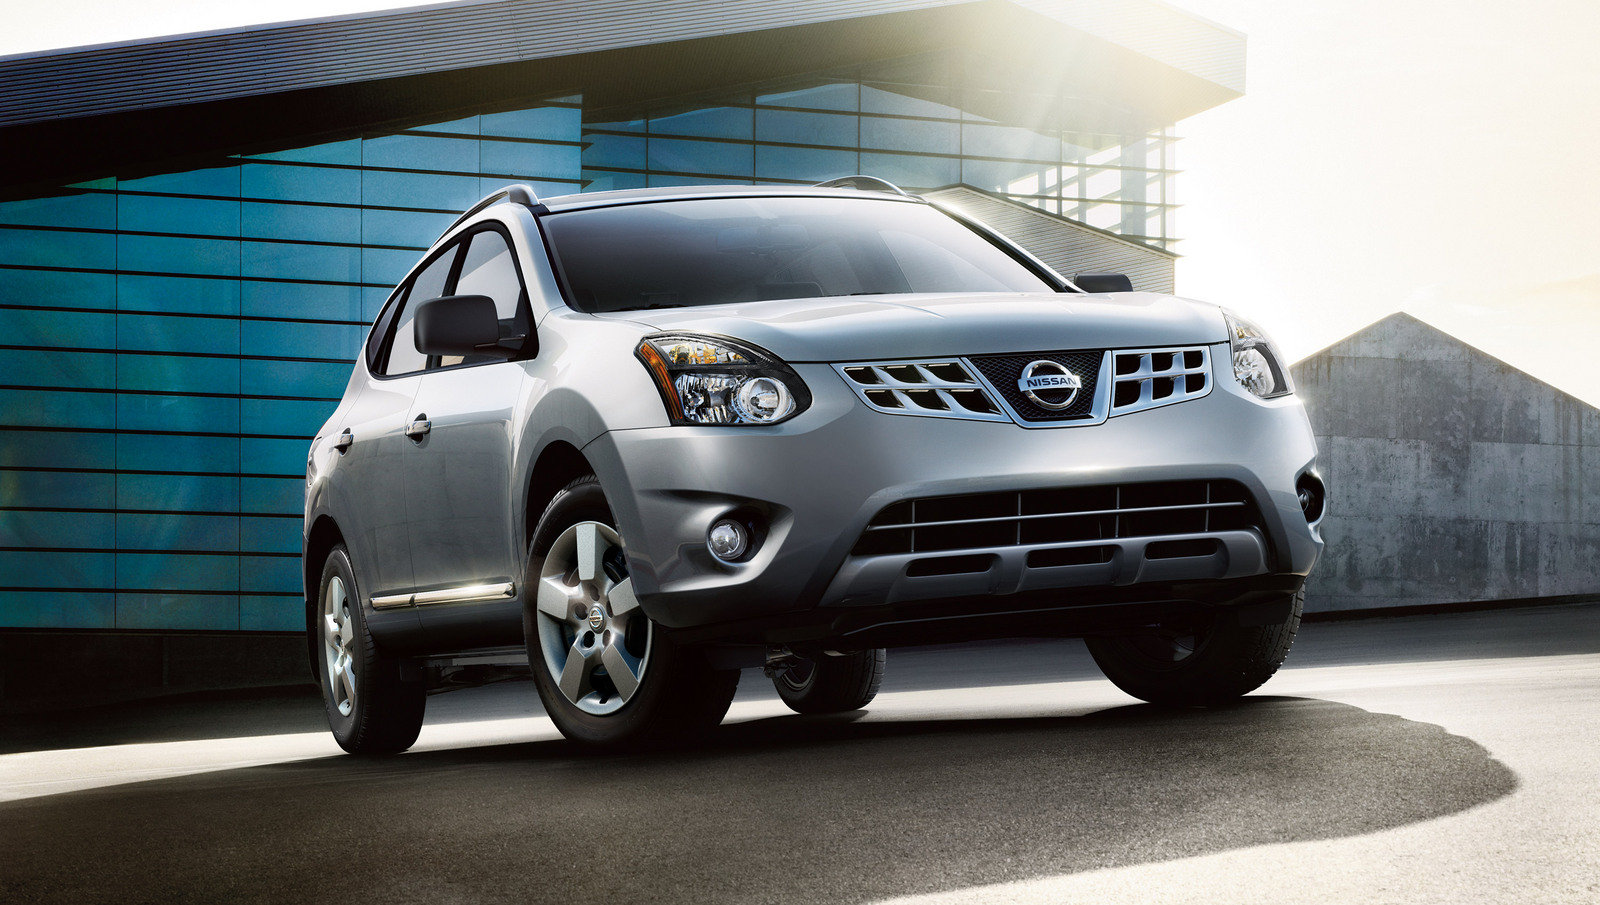 2014 nissan rogue select picture 547205 car review top speed. Black Bedroom Furniture Sets. Home Design Ideas